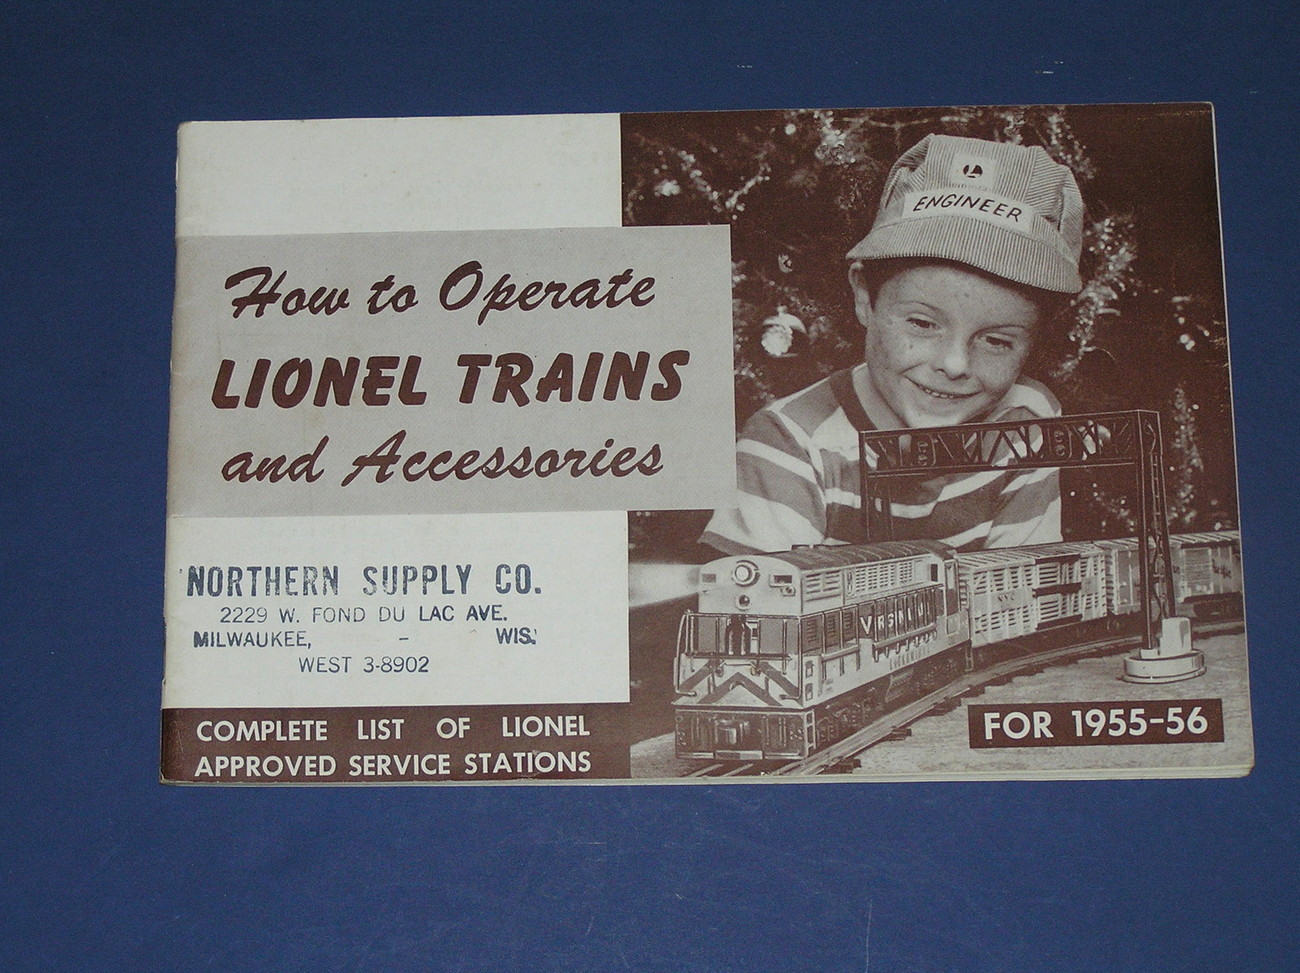 1955-56 HOW TO OPERATE LIONEL TRAINS AND ACCESSORIES